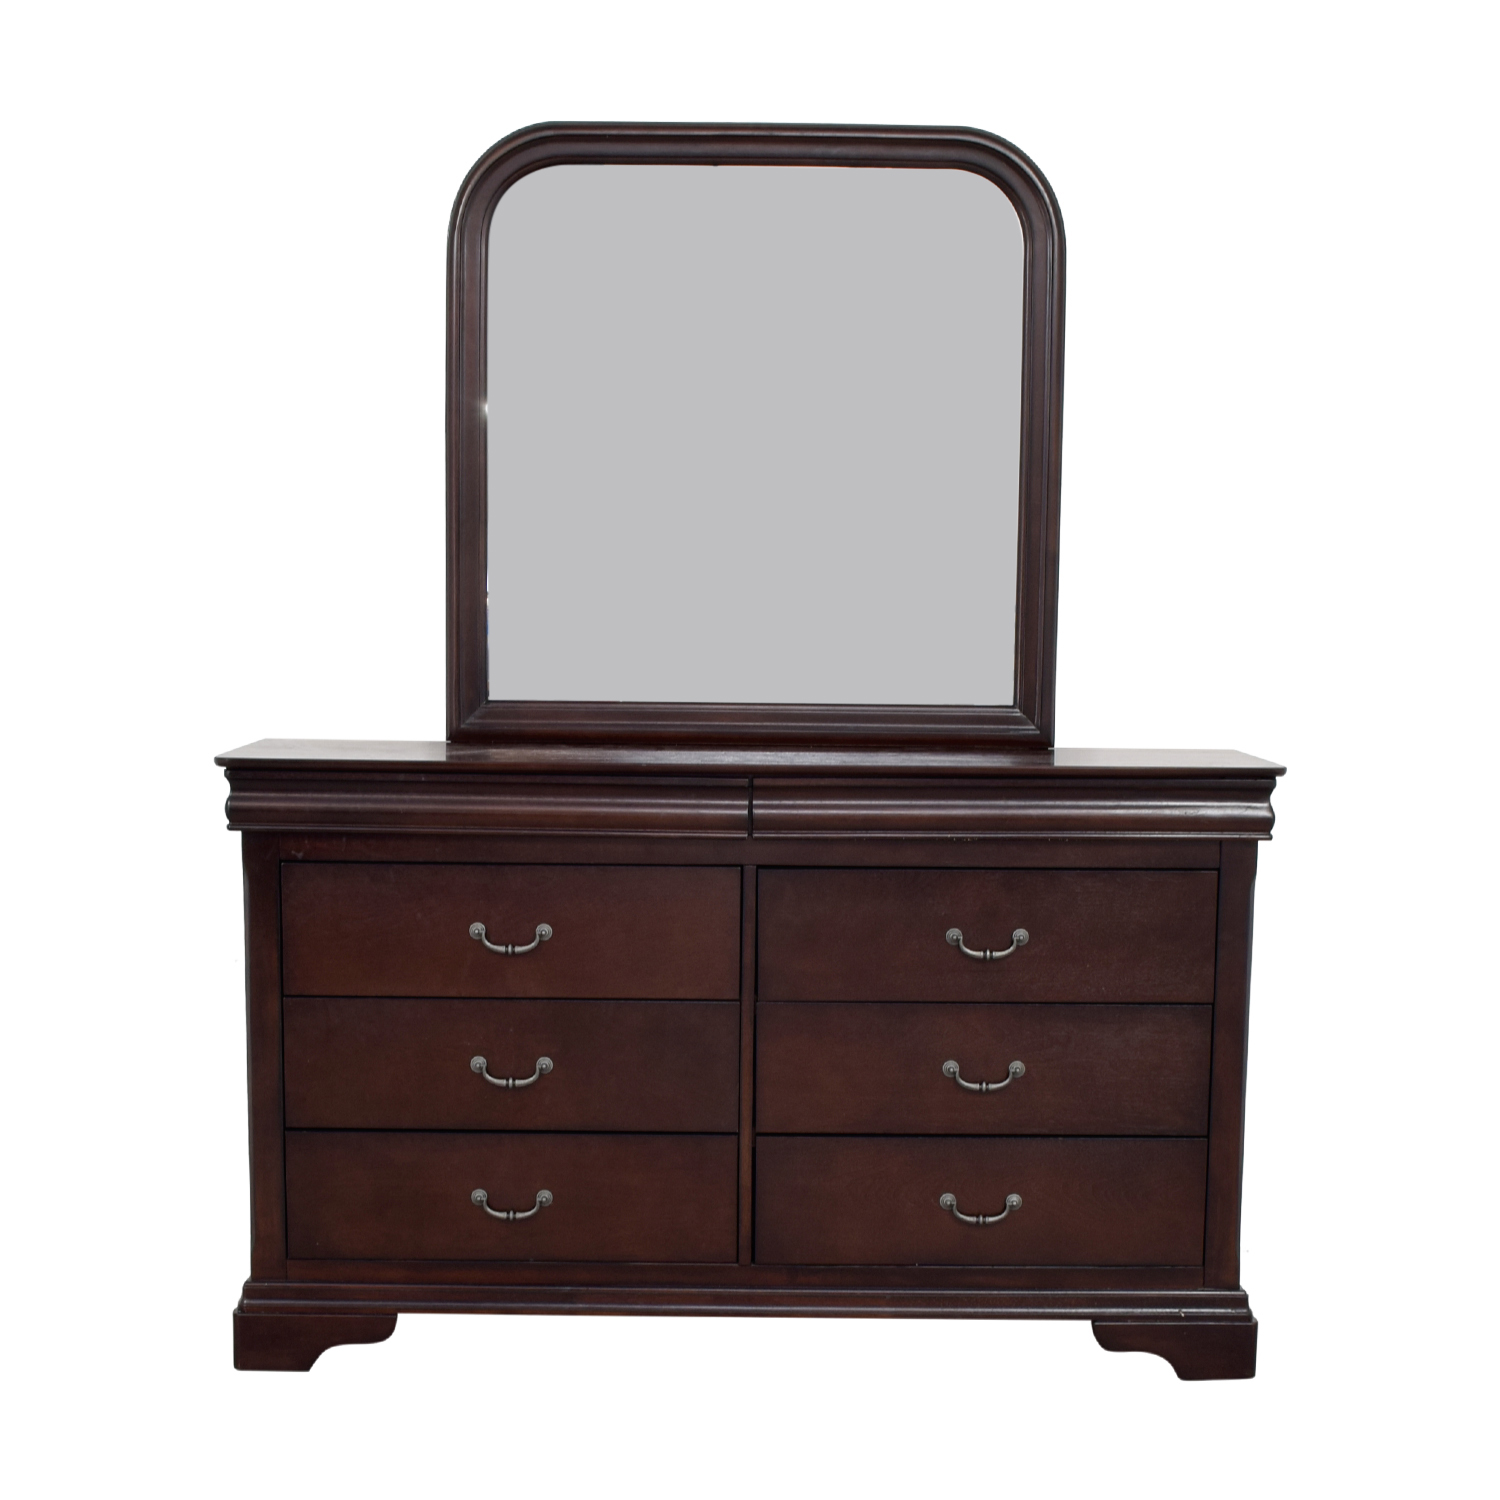 shop Raymour & Flanigan Raymour & Flanigan Charleston Six-Drawer Dresser with Trays and Mirror online